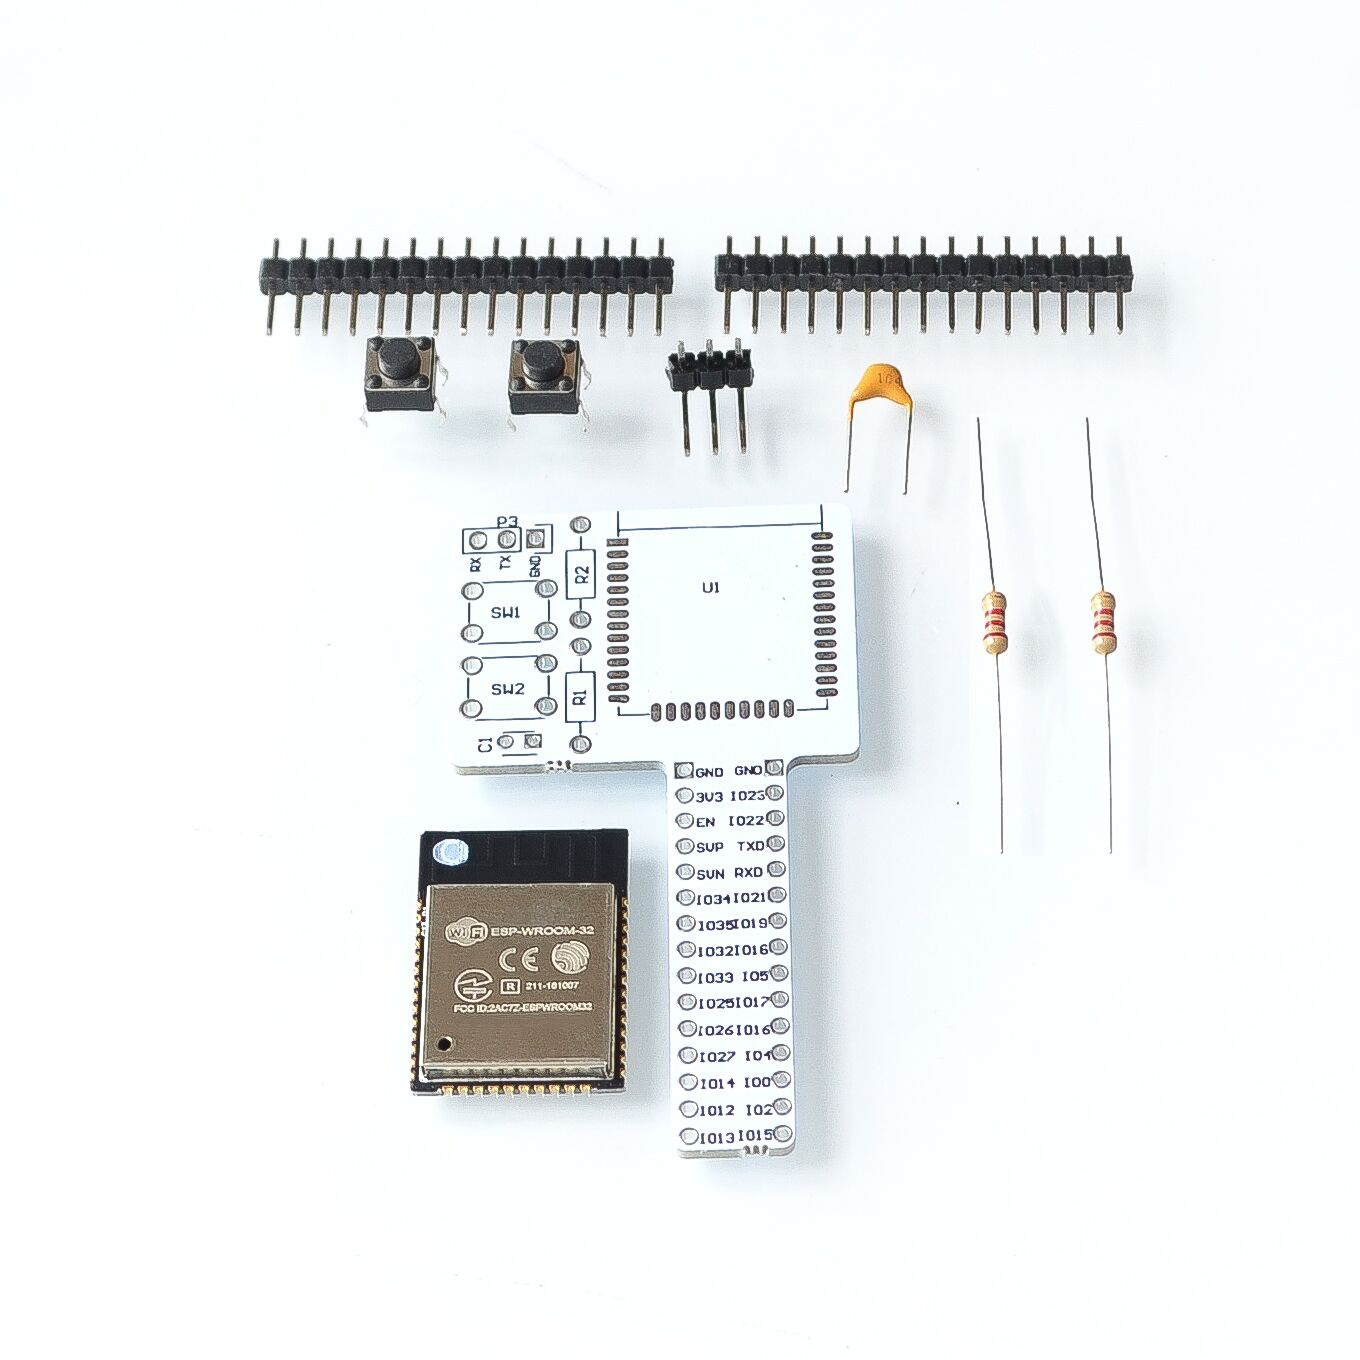 ESP32 rev1 (rev one) WIFI Bluetooth Breadboard Module kit esp32 ESP-32 Development boardESP32 rev1 (rev one) WIFI Bluetooth Breadboard Module kit esp32 ESP-32 Development board